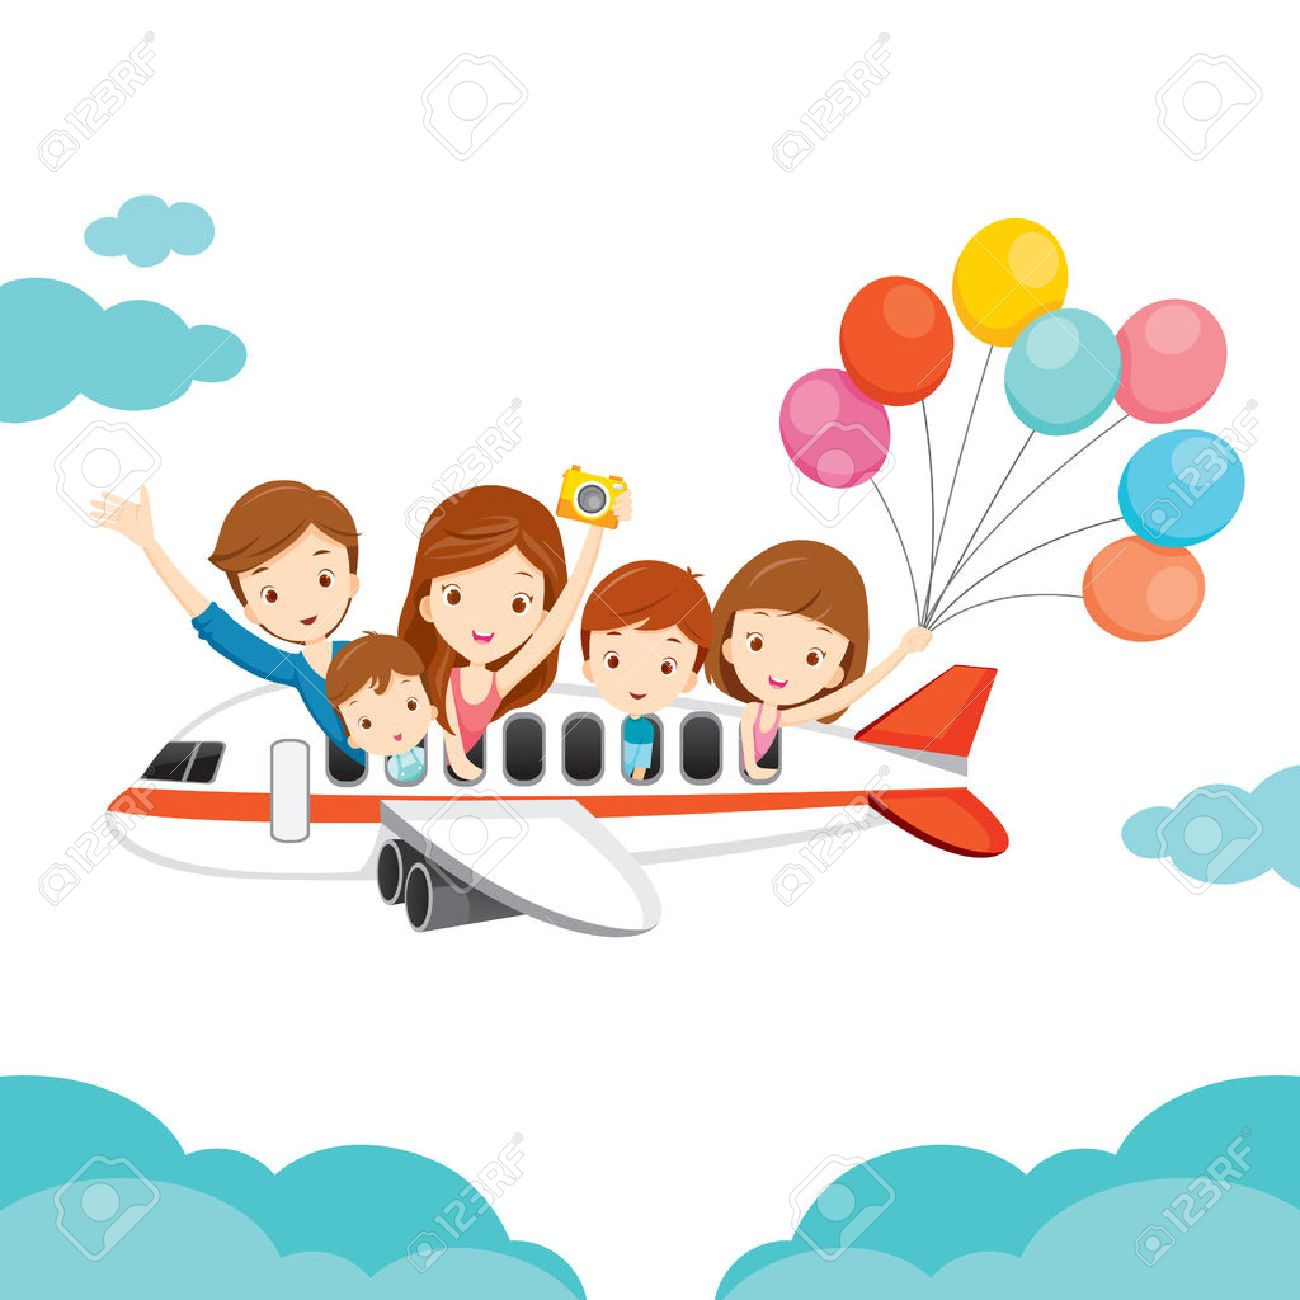 Family Happy on Airplane, Vacations, Holiday, Travel Destination, Journey Trips, Transportation - 54343467